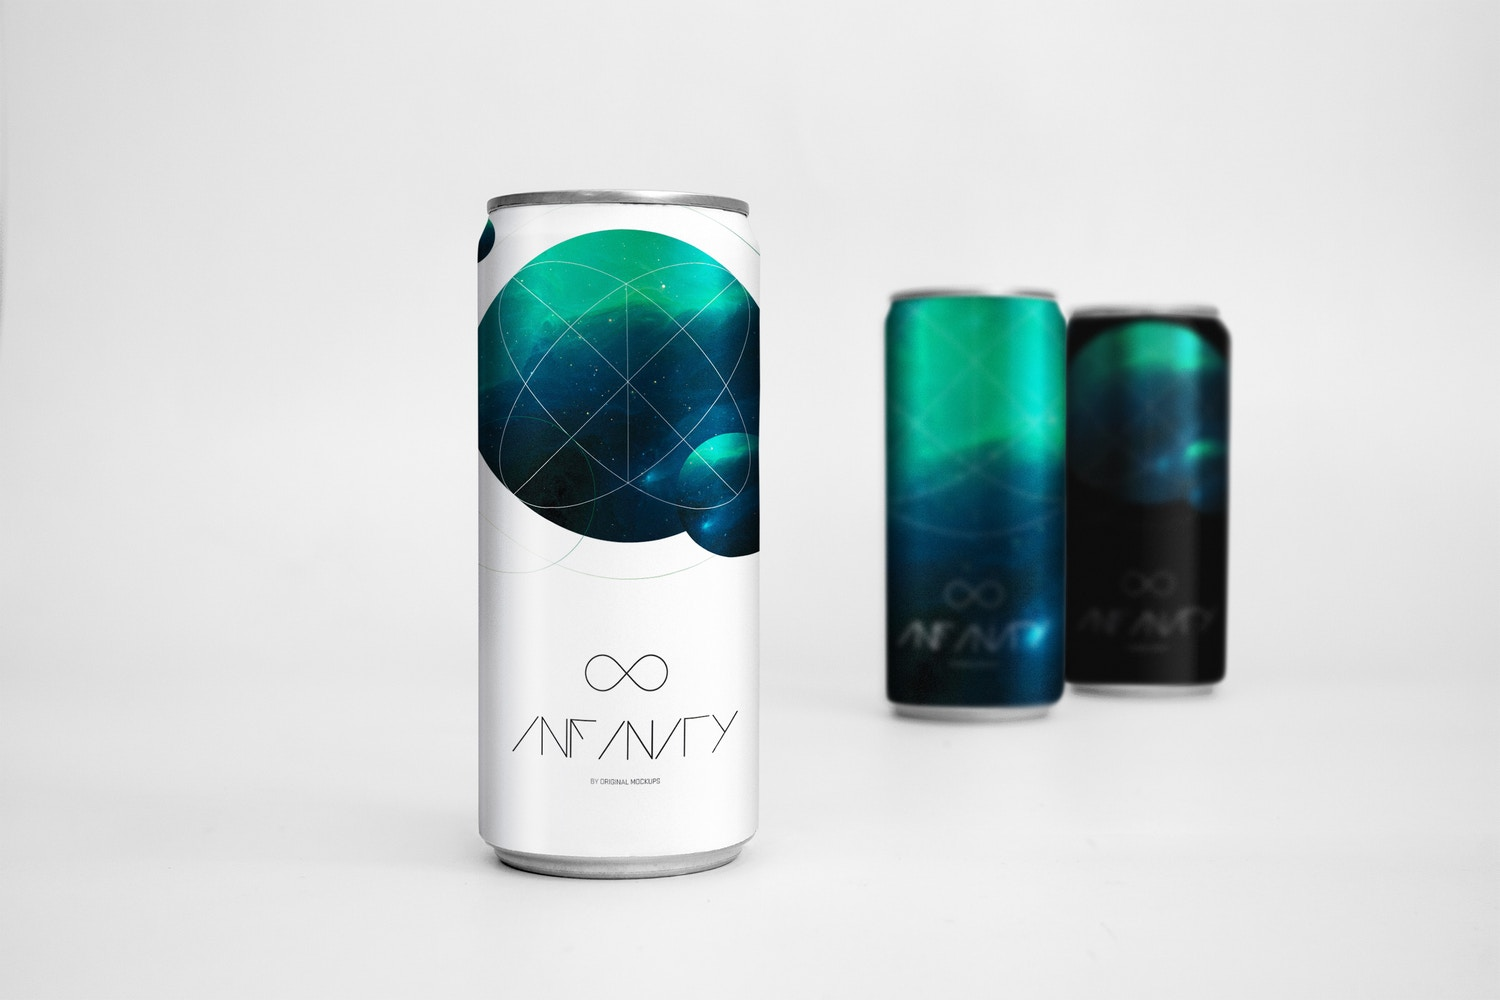 Sleek Cans Mockup 3 by Original Mockups on Original Mockups